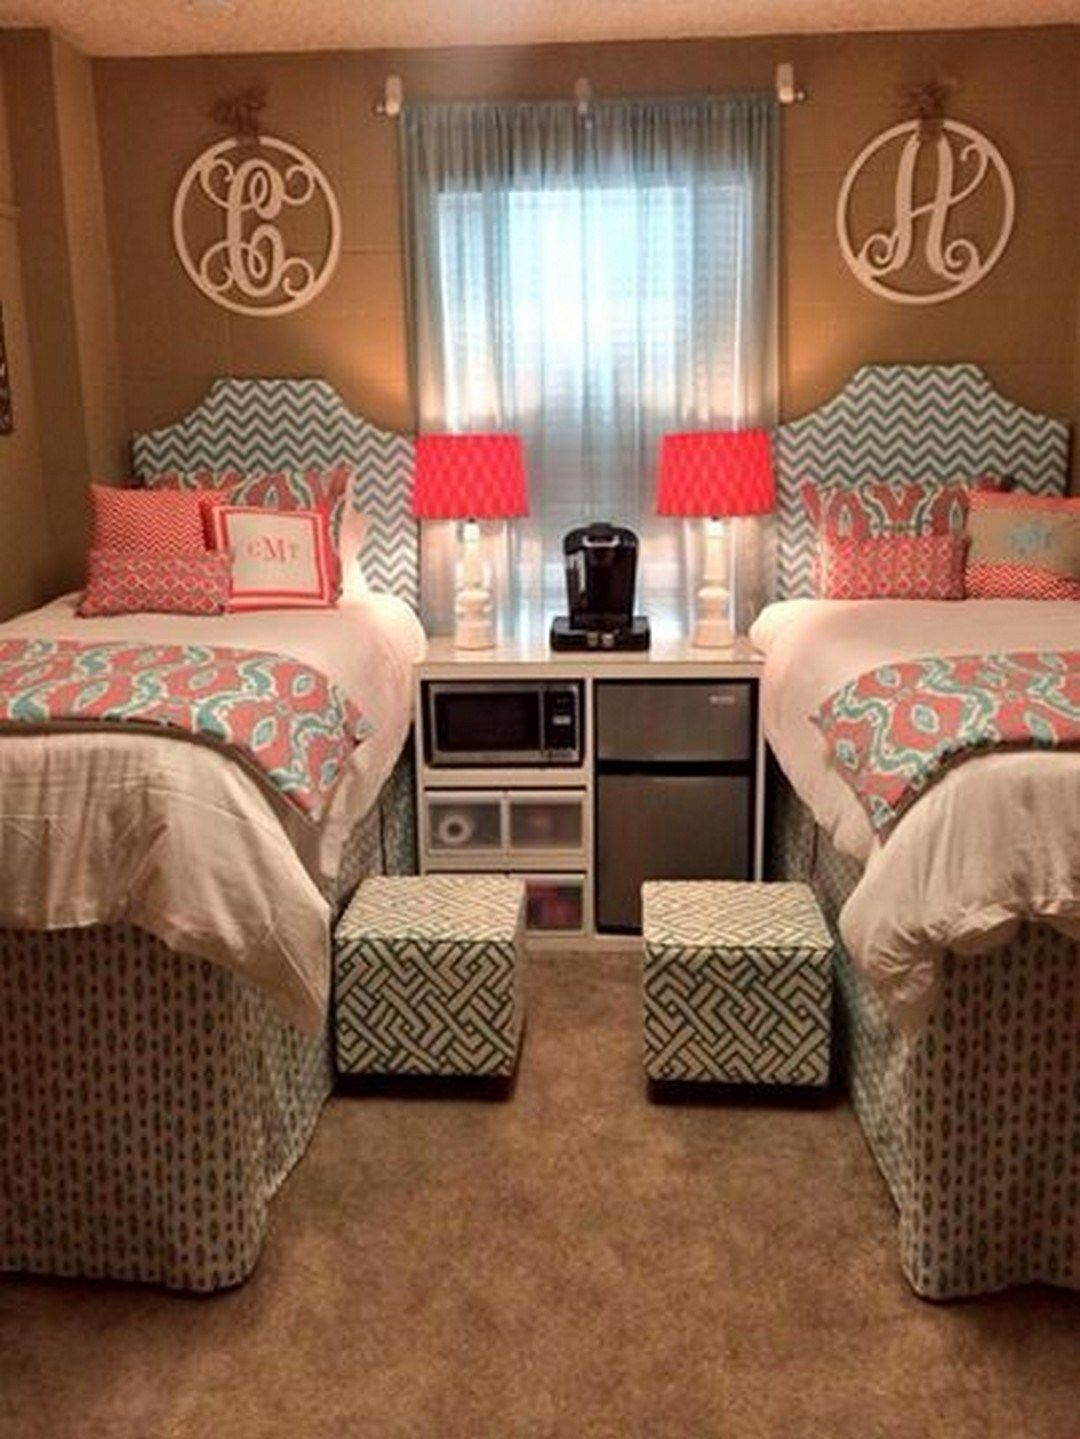 99 Awesome And Cute Dorm Room Decorating Ideas (101) Part 17